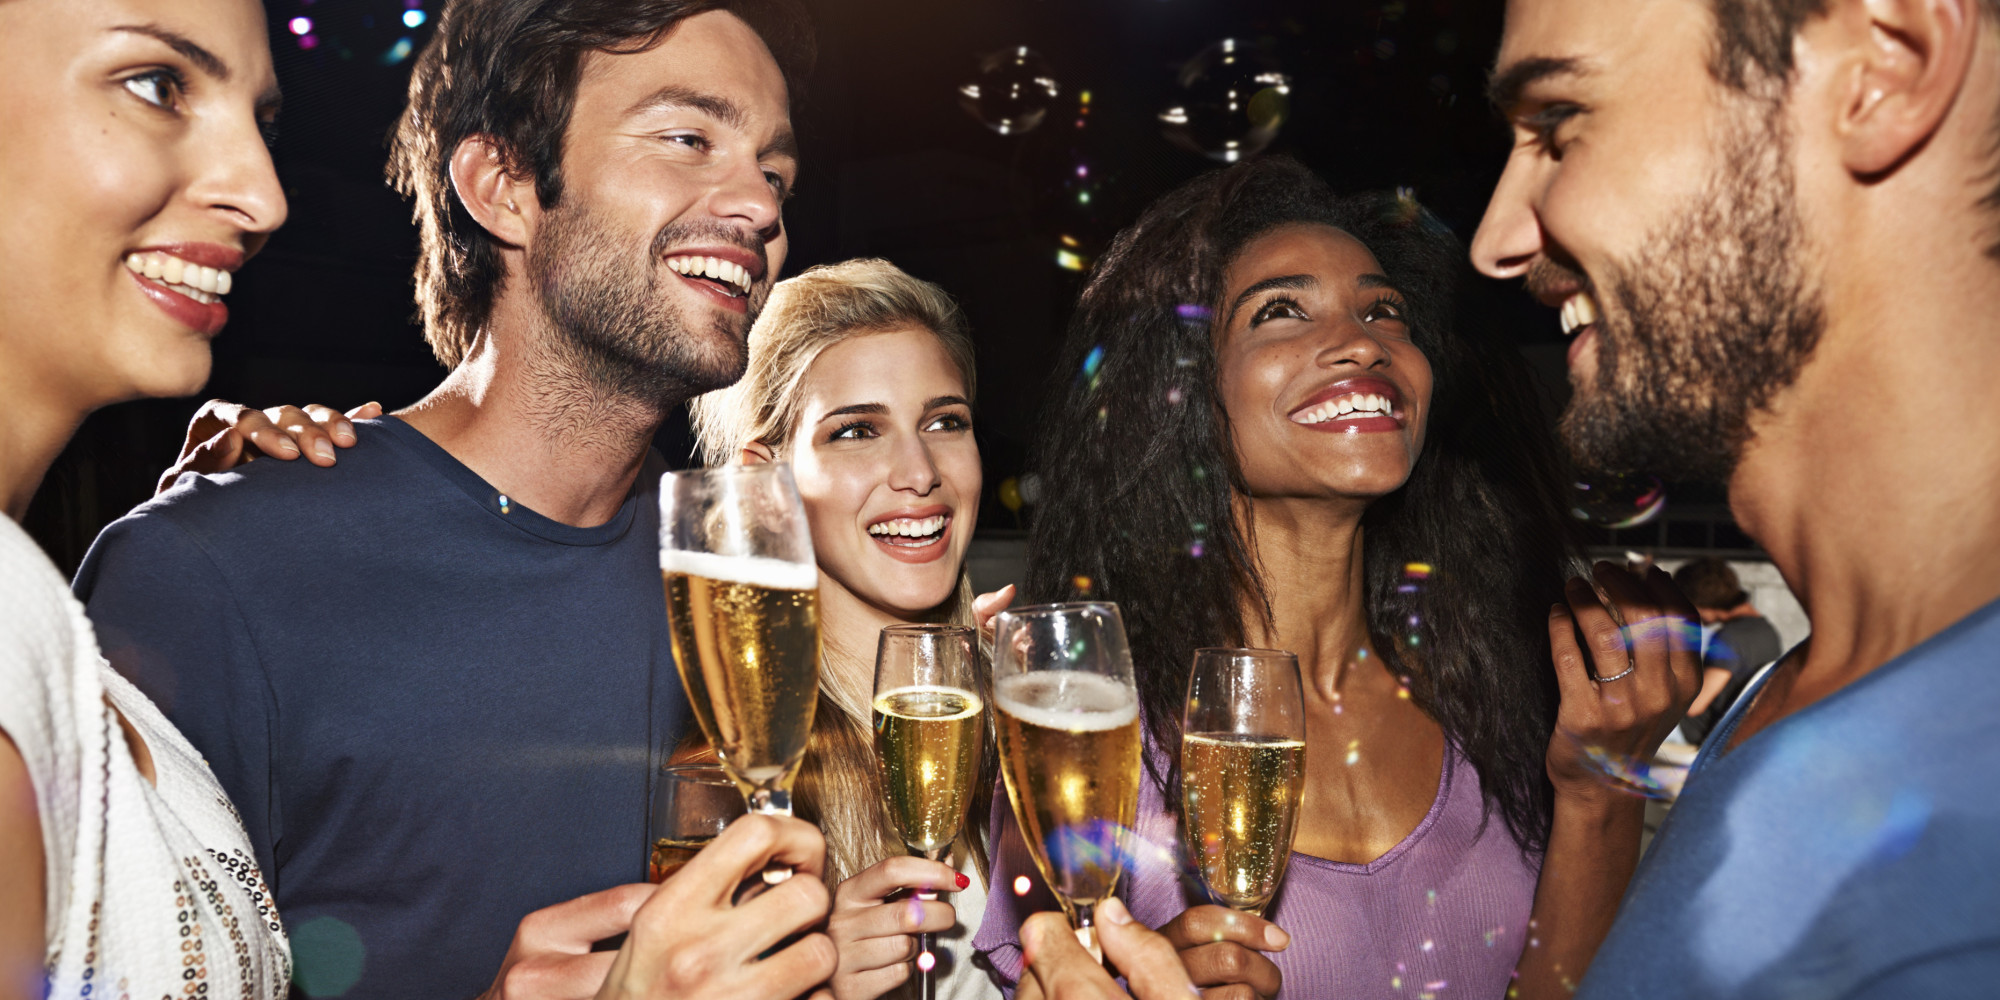 The More Friends At The Bar, The More You'll Drink | HuffPost